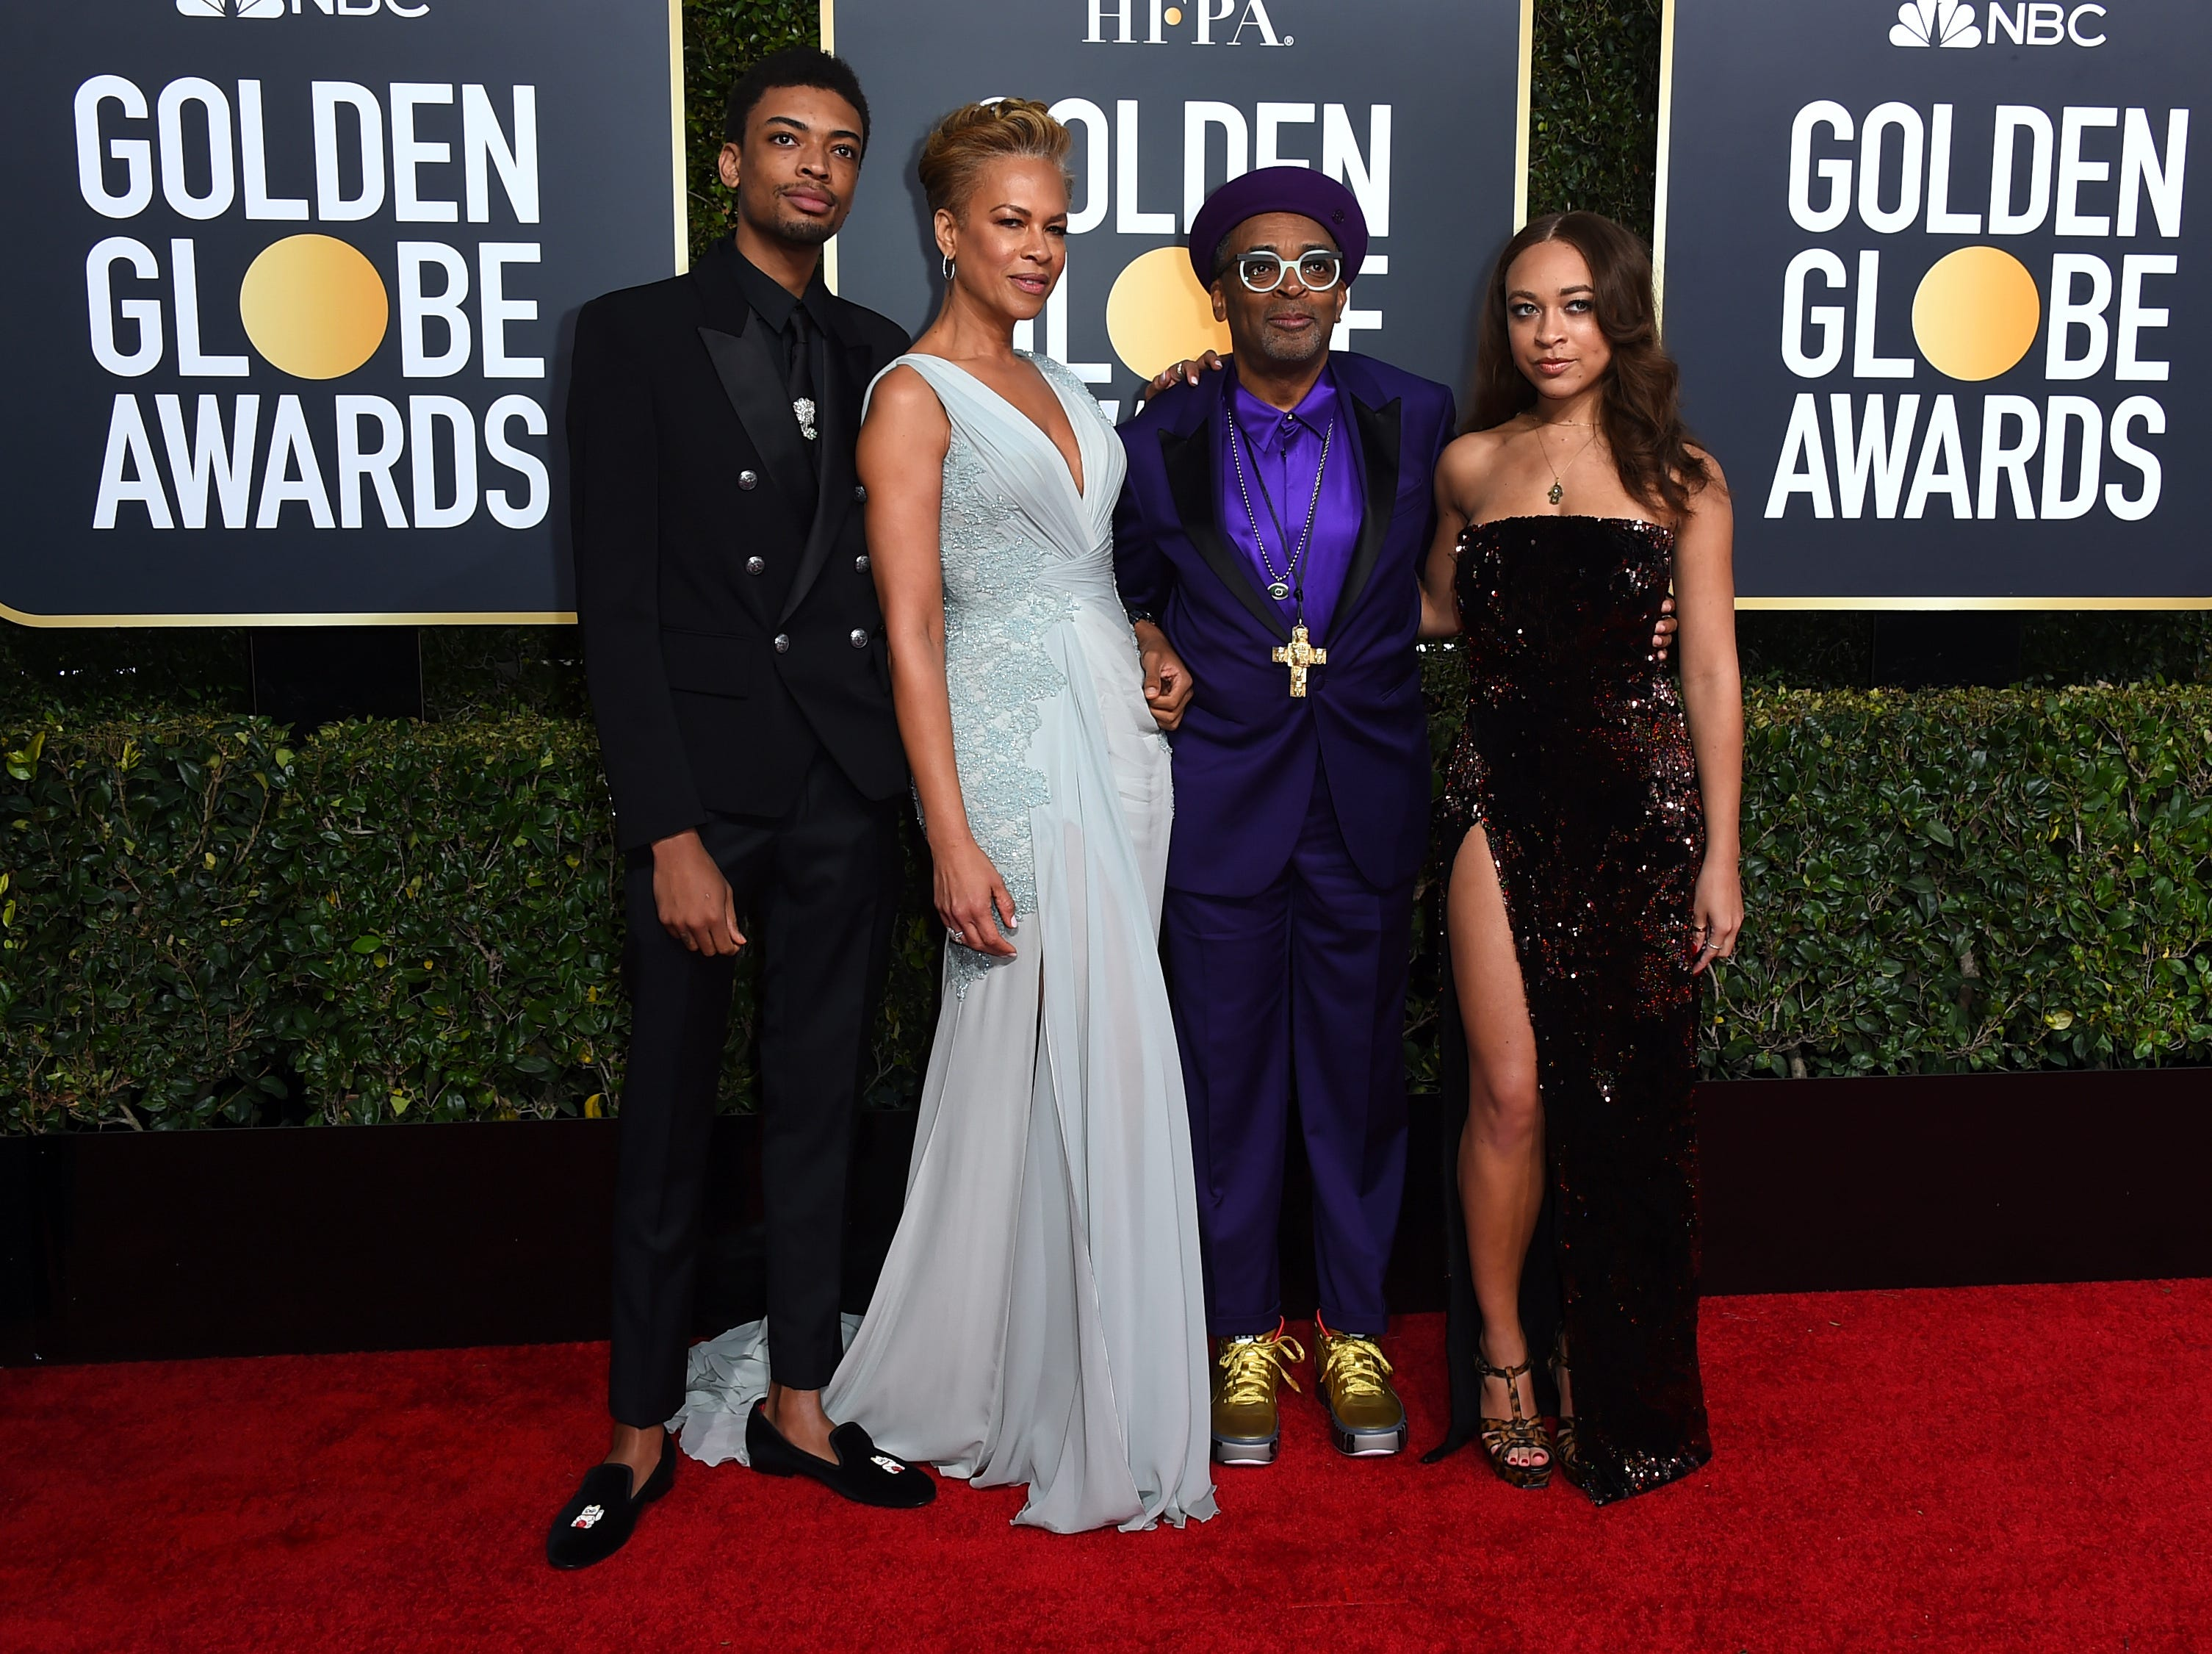 Spike Lee, second right, and from left, son Jackson Lee, wife Tonya Lewis Lee and daughter Satchel Lee arrive at the 76th annual Golden Globe Awards at the Beverly Hilton Hotel.